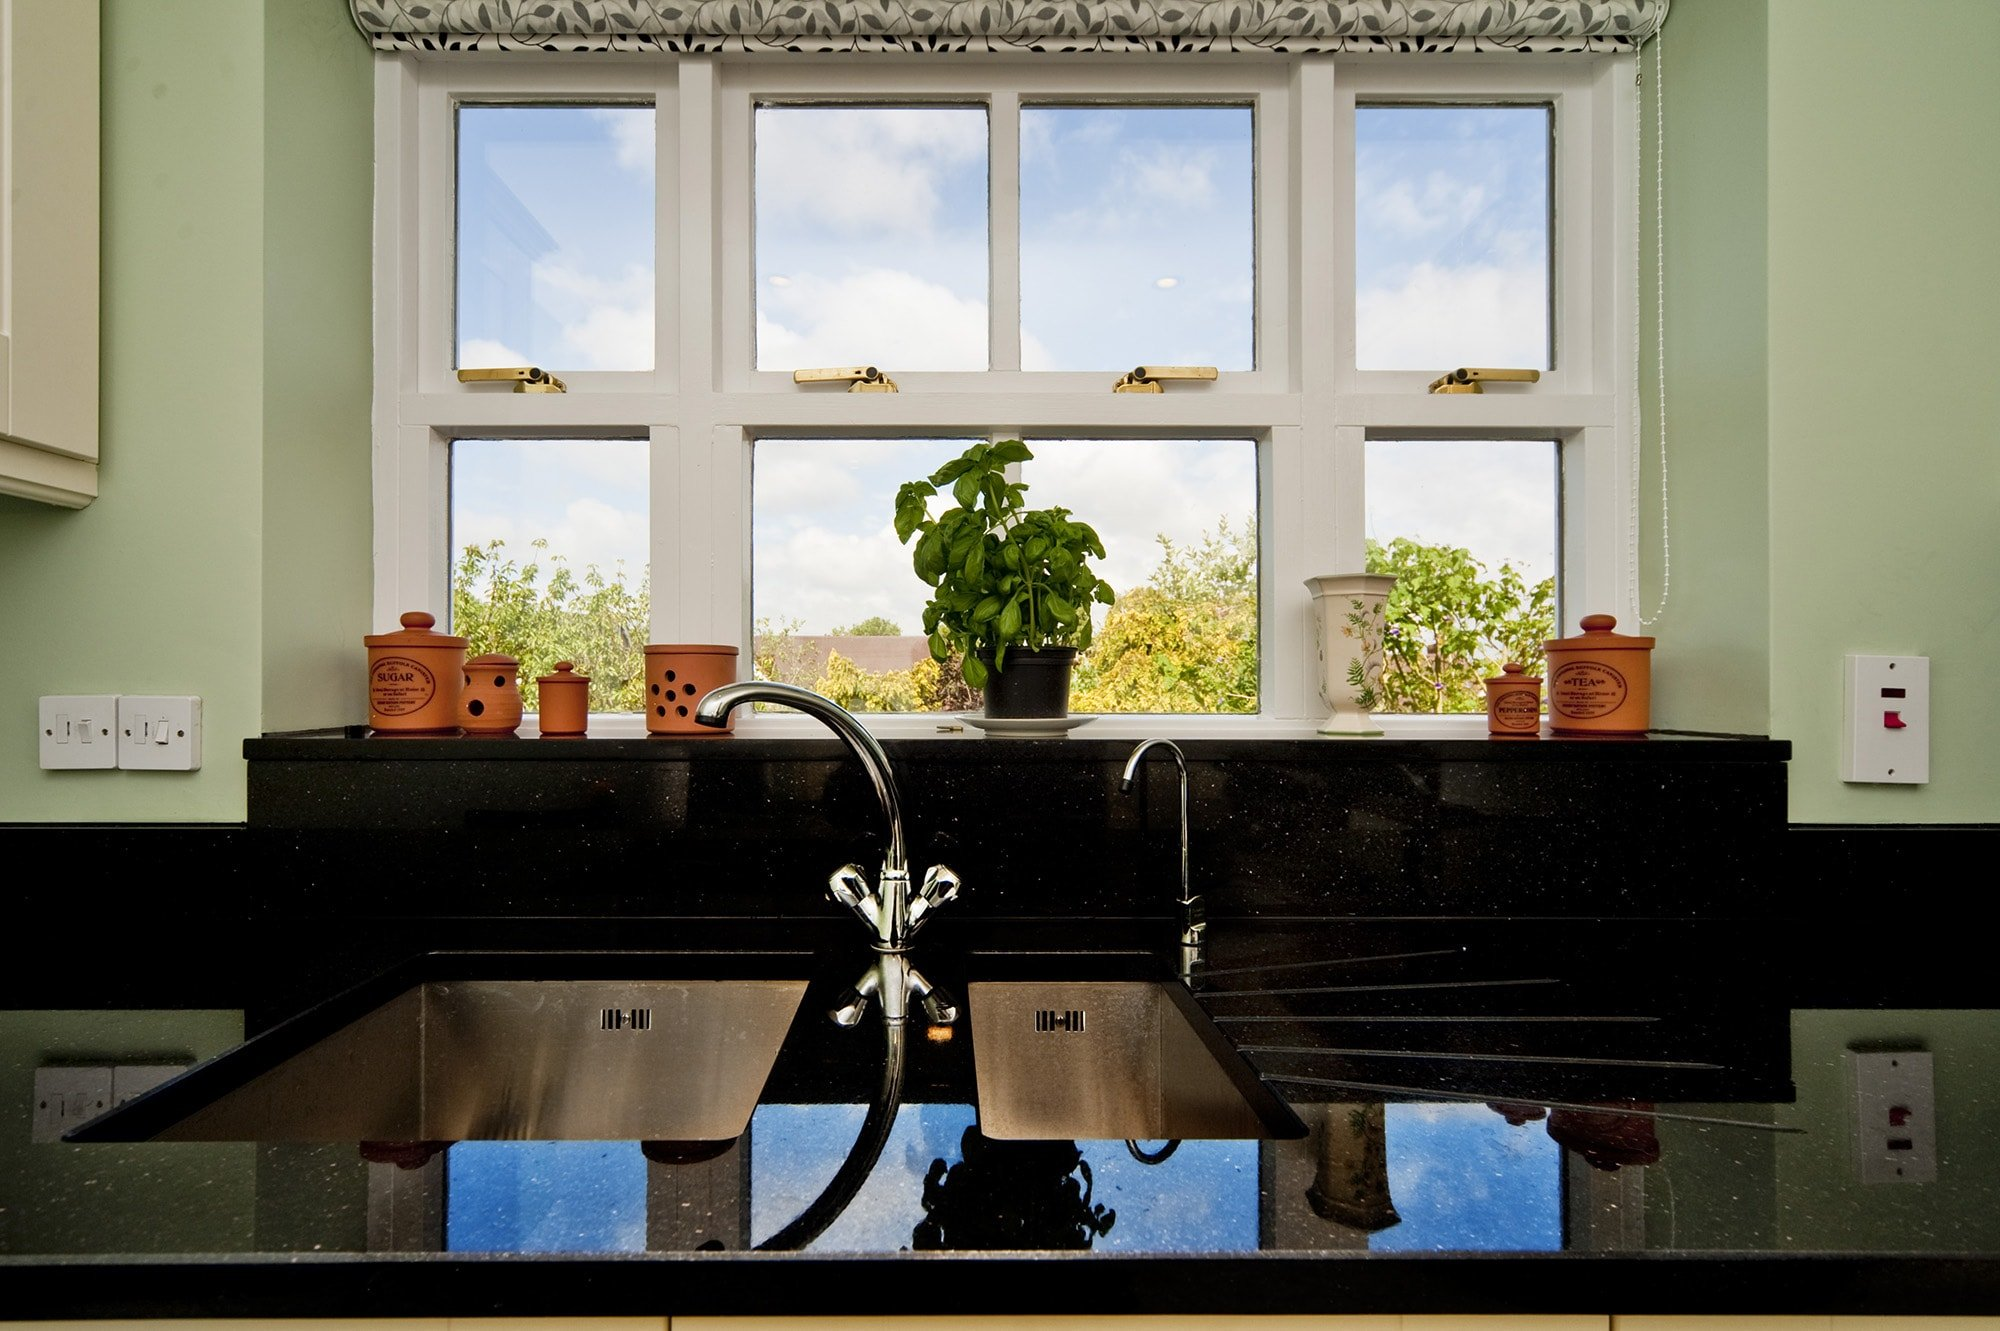 black-galaxy-granite-south-croydon-105913-a-windowsill-sink-layout-min